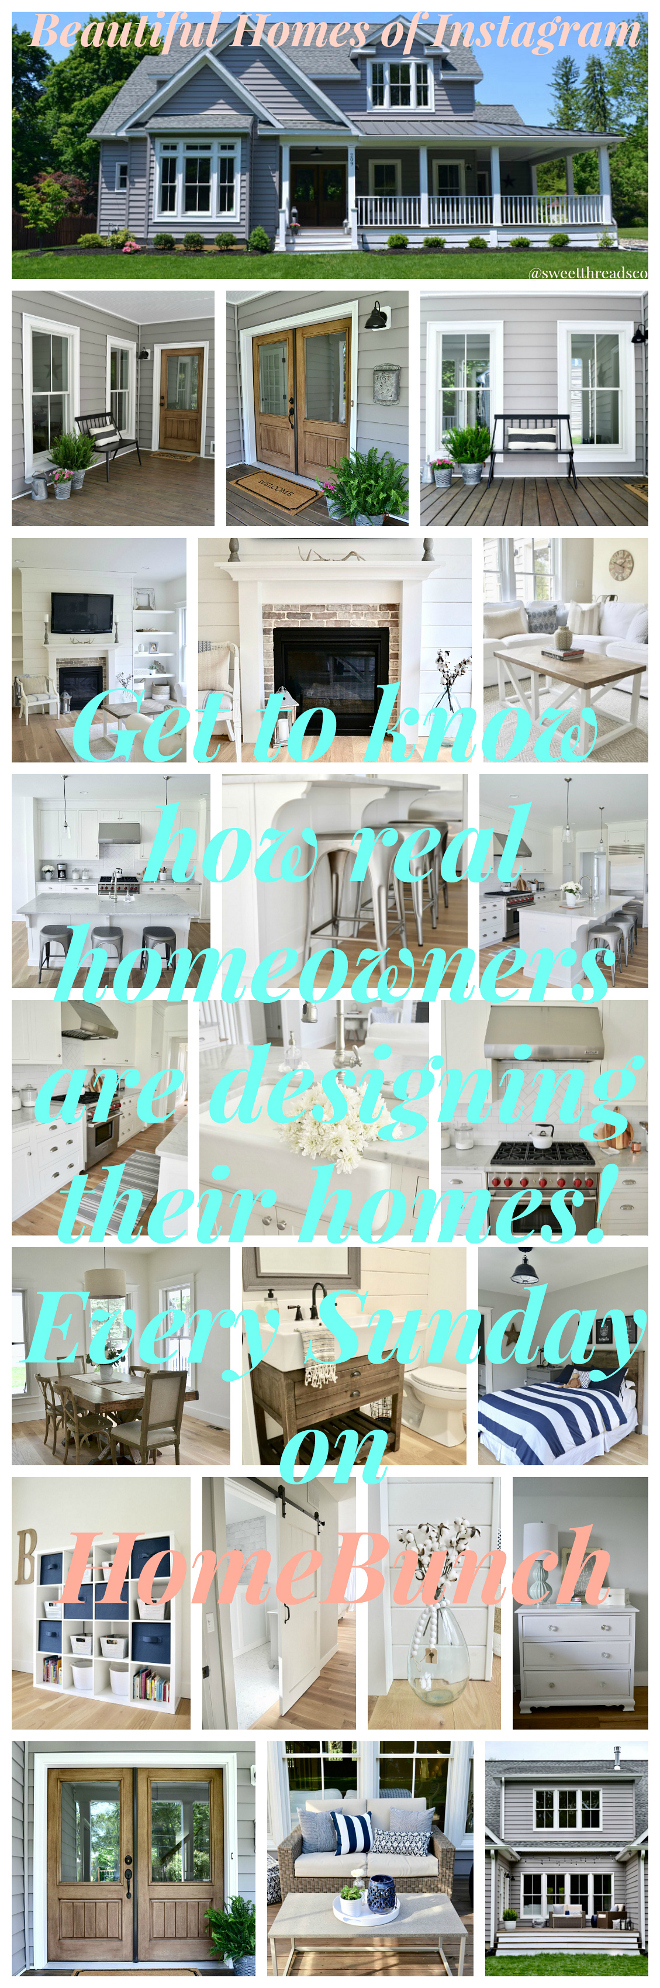 Beautiful Homes of Instagram Get to know how real homeowners are designing their homes! Every Sunday on HomeBunch @sweetthreadsco